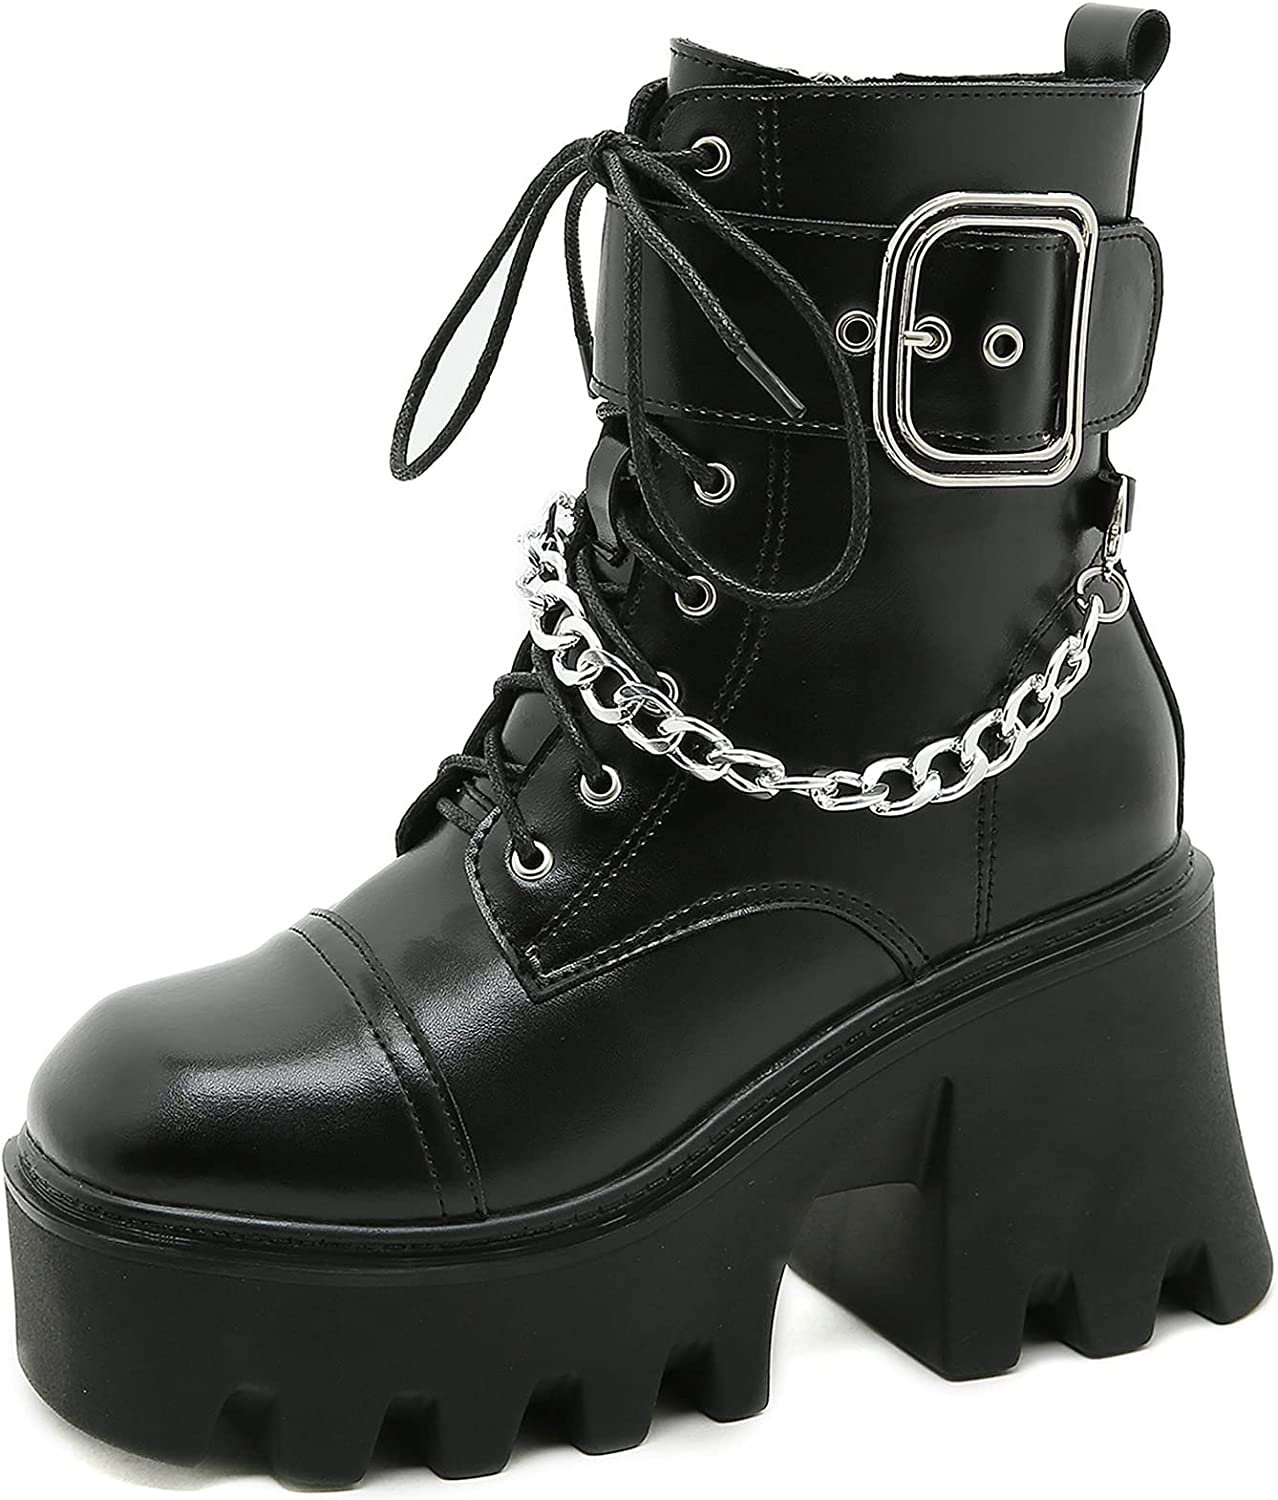 femflame Black Platform Boots For Women Punk Goth Ankle Boots Square Toe Military and Tactical Boots Outdoor Combat Boots Motorcycle Boots